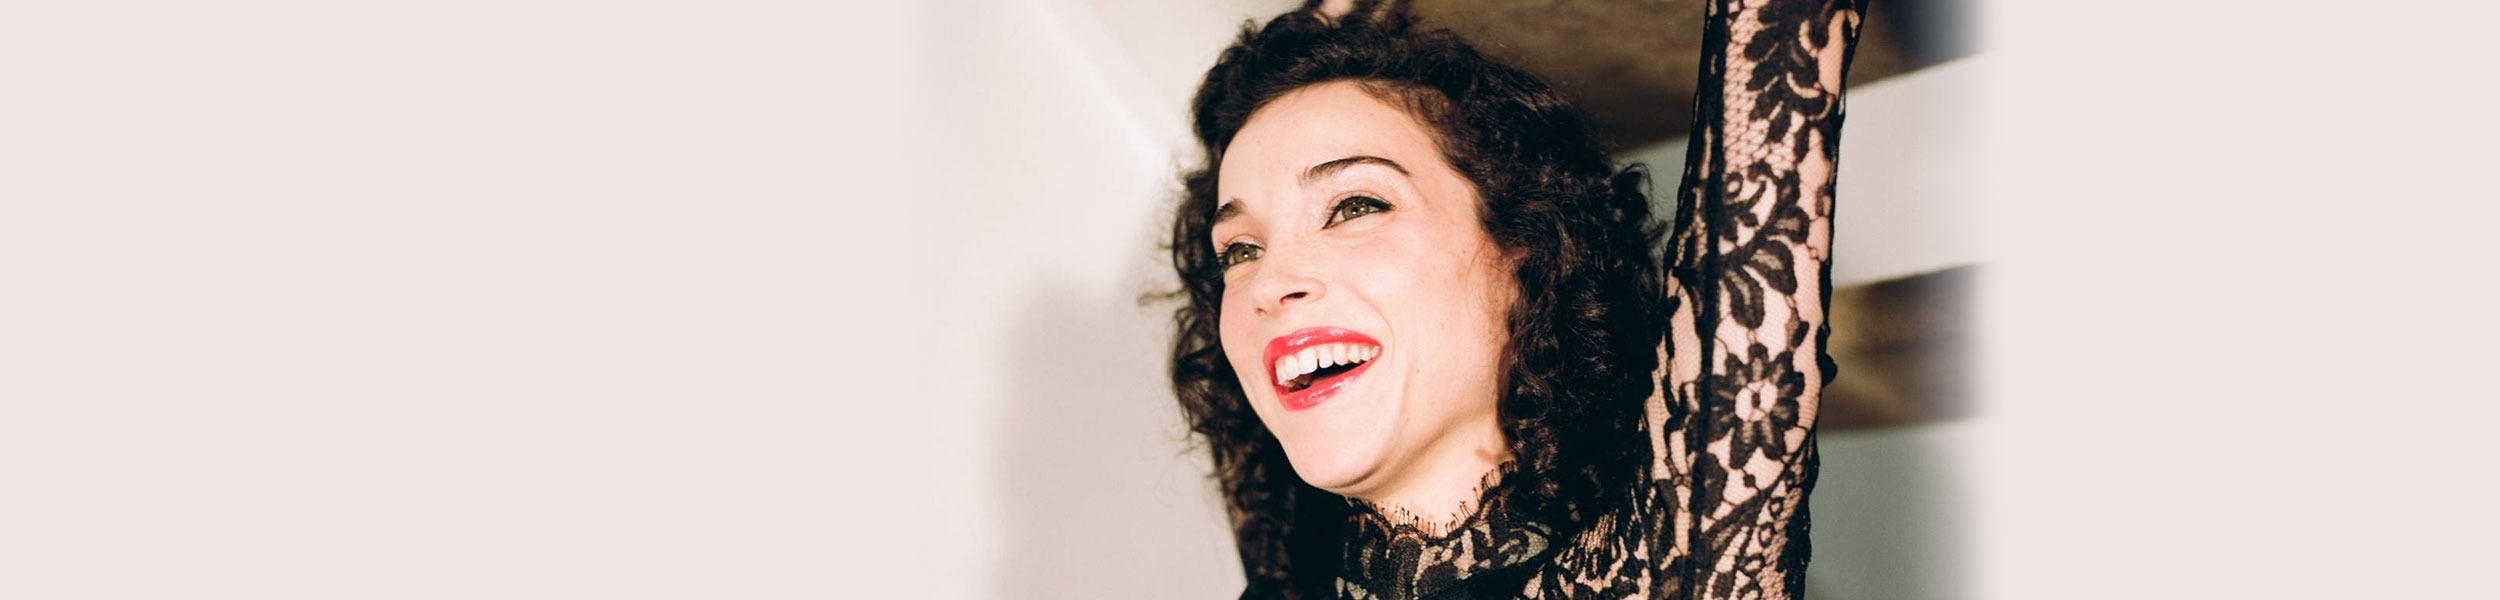 St. Vincent - Watch the New Video for 'Cruel' by St Vincent